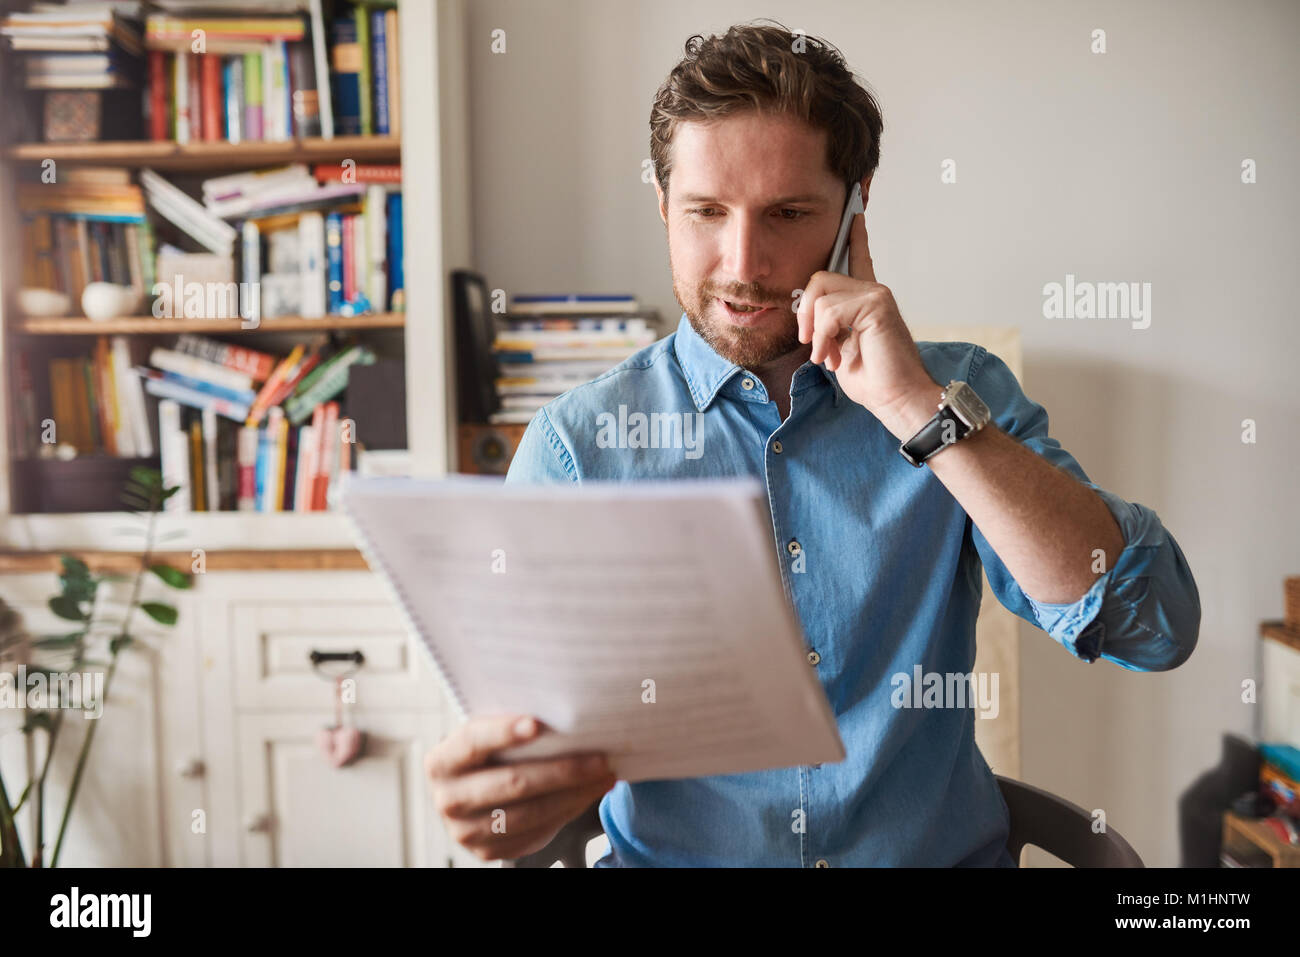 Man reading paperwork and talking on a cellphone at home - Stock Image